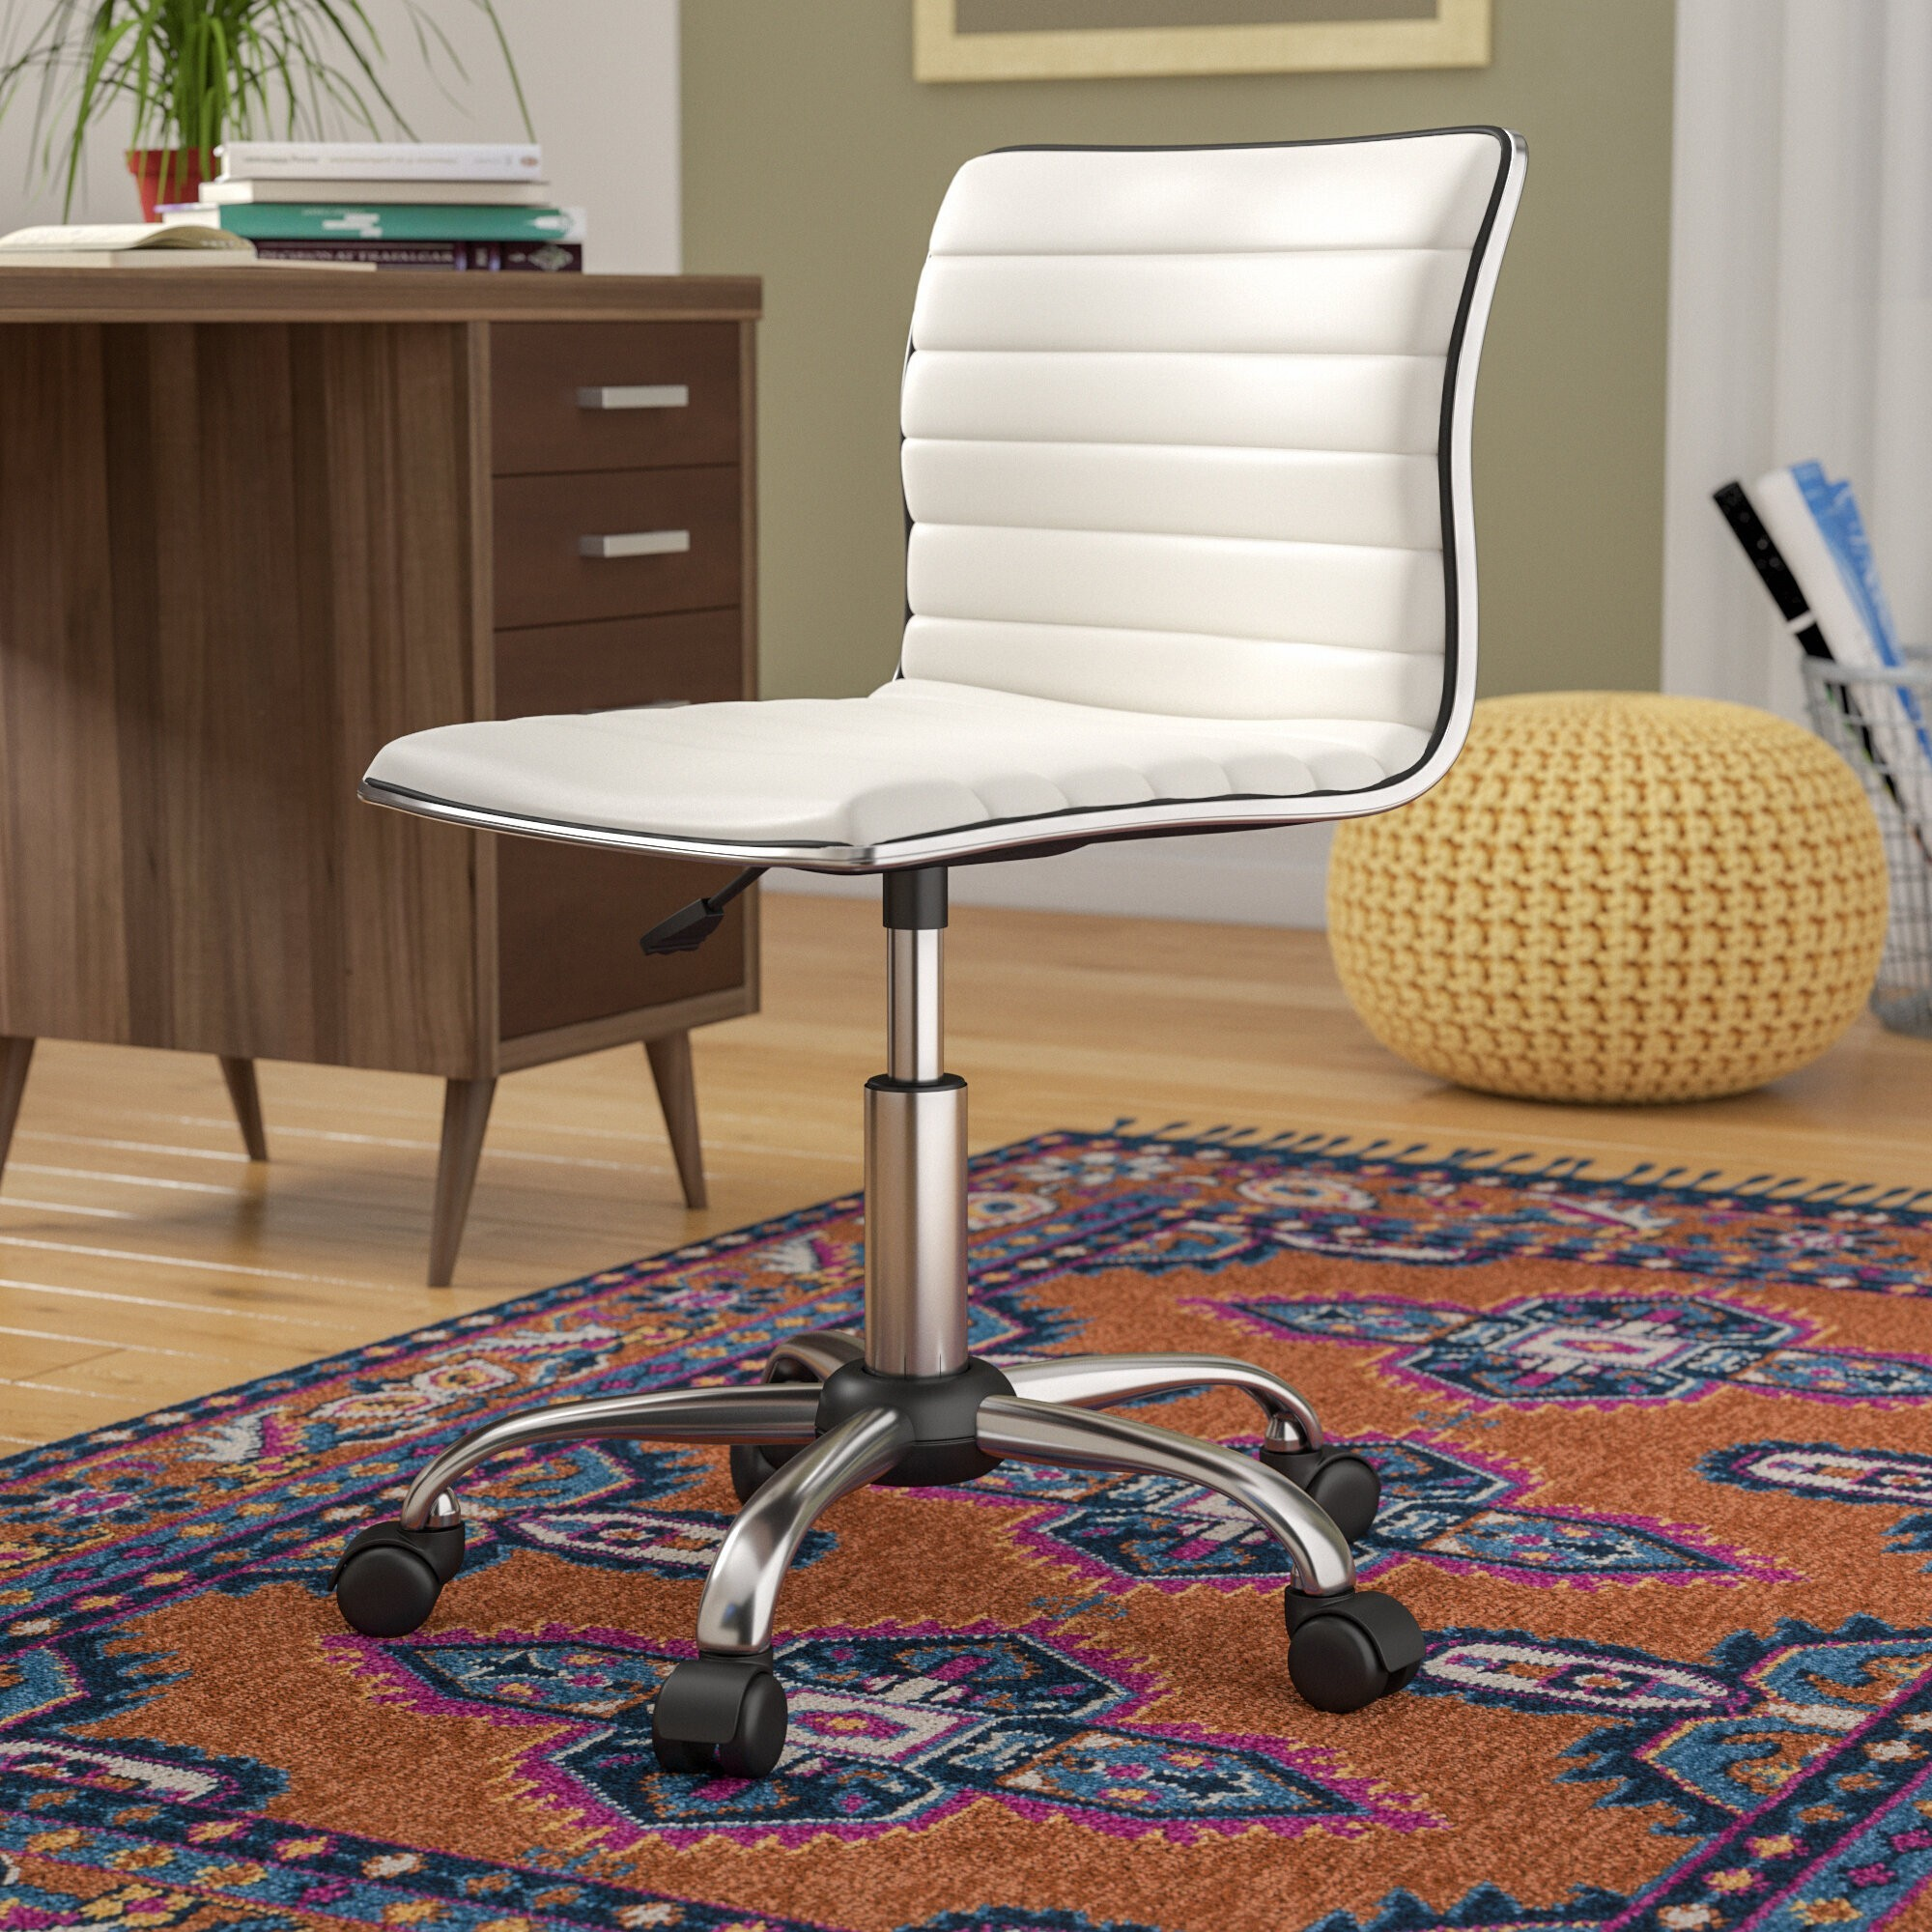 How To Choose An Office Chair Foter